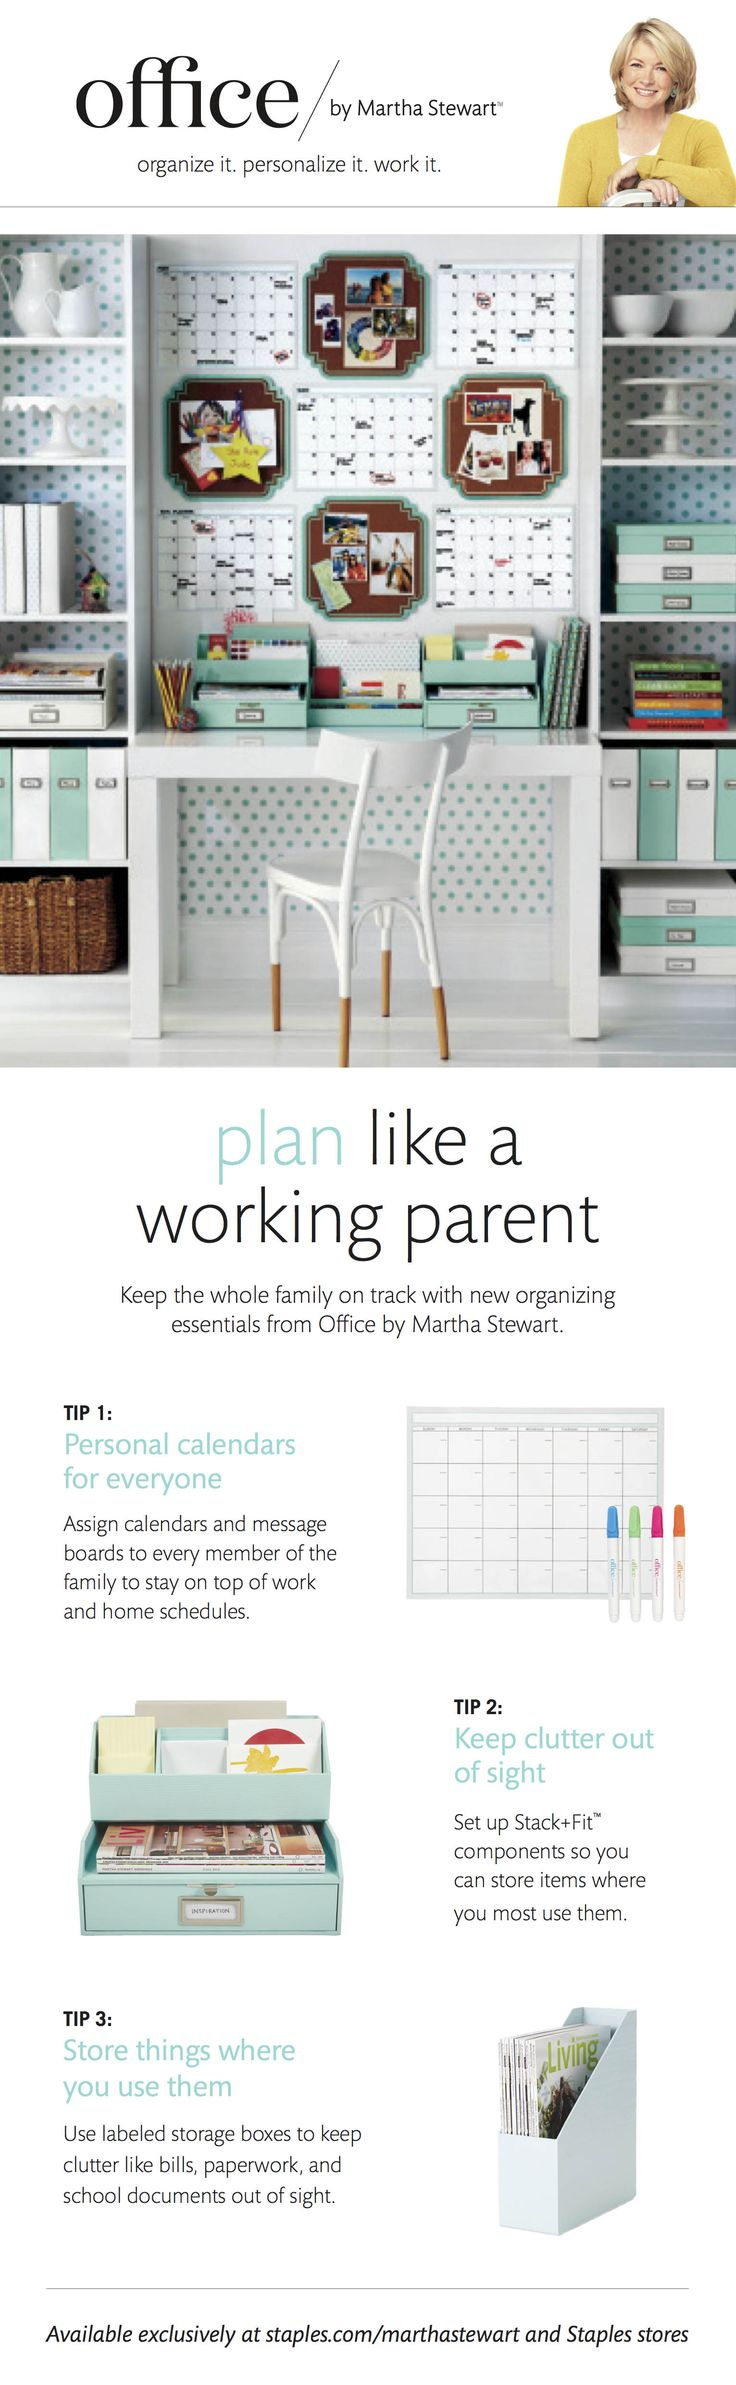 61 best organizing your office images on pinterest | martha